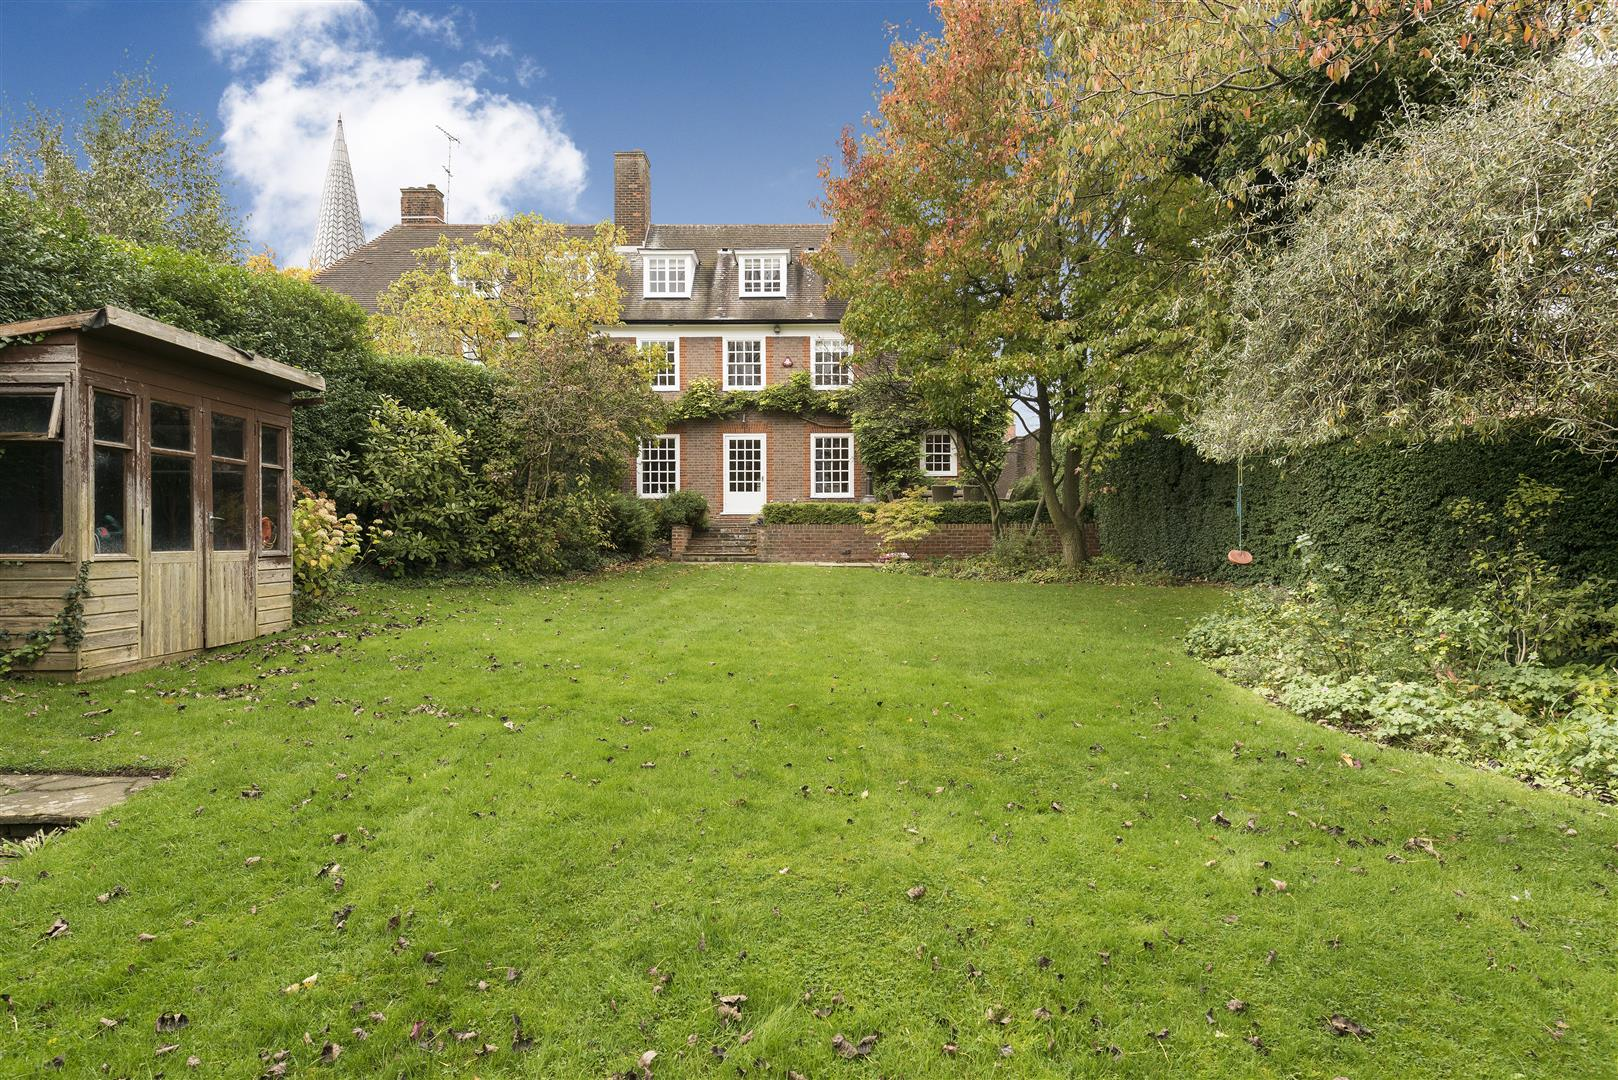 6 Bedroom Property For Sale In South Square Hampstead